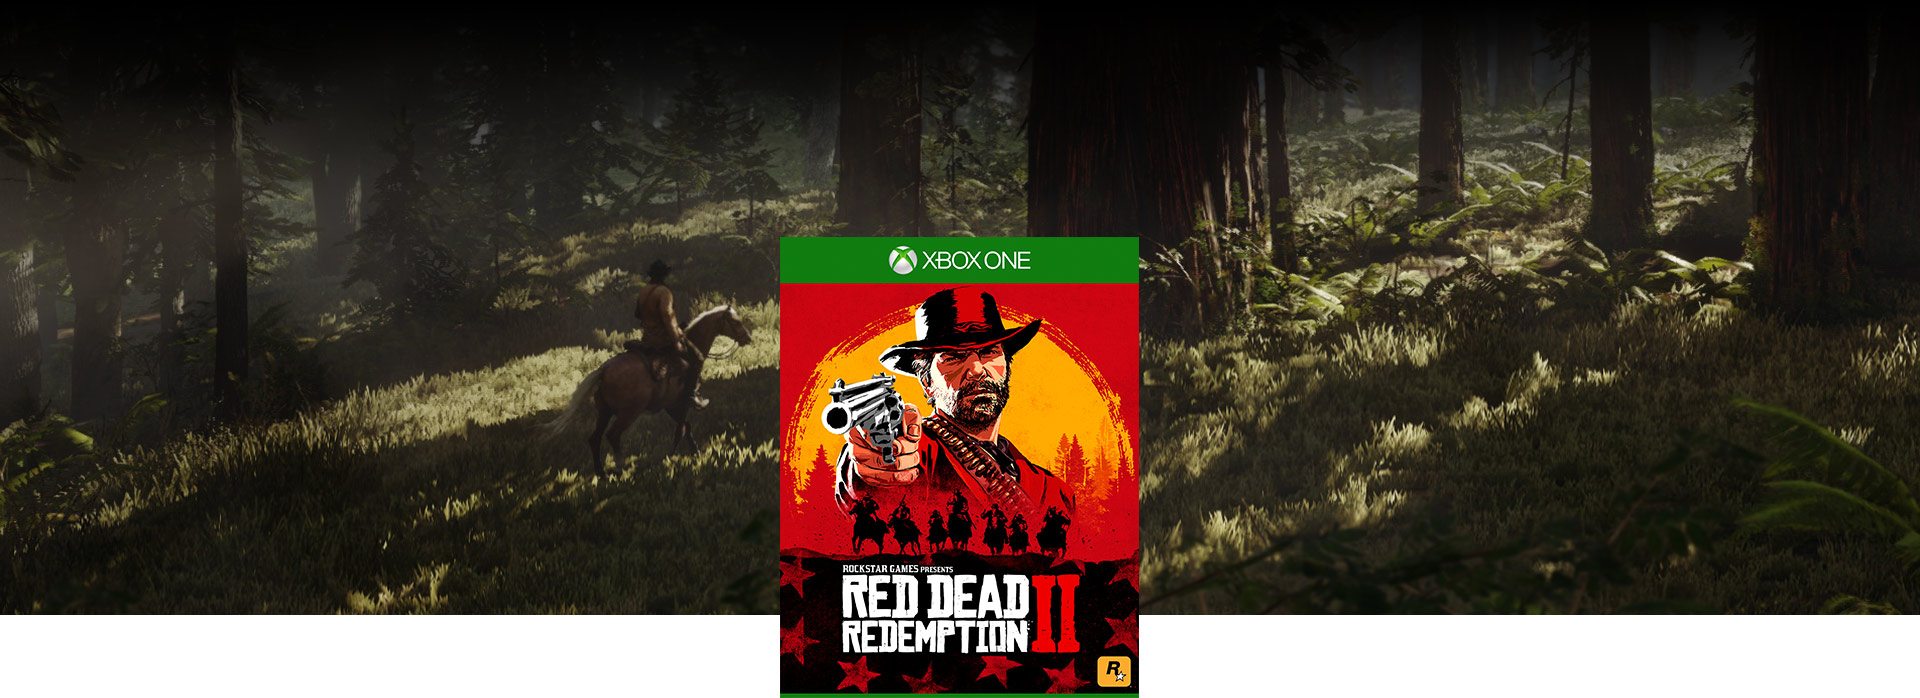 Red Dead Redemption 2 boxshot with character Riding horse through the woods in background